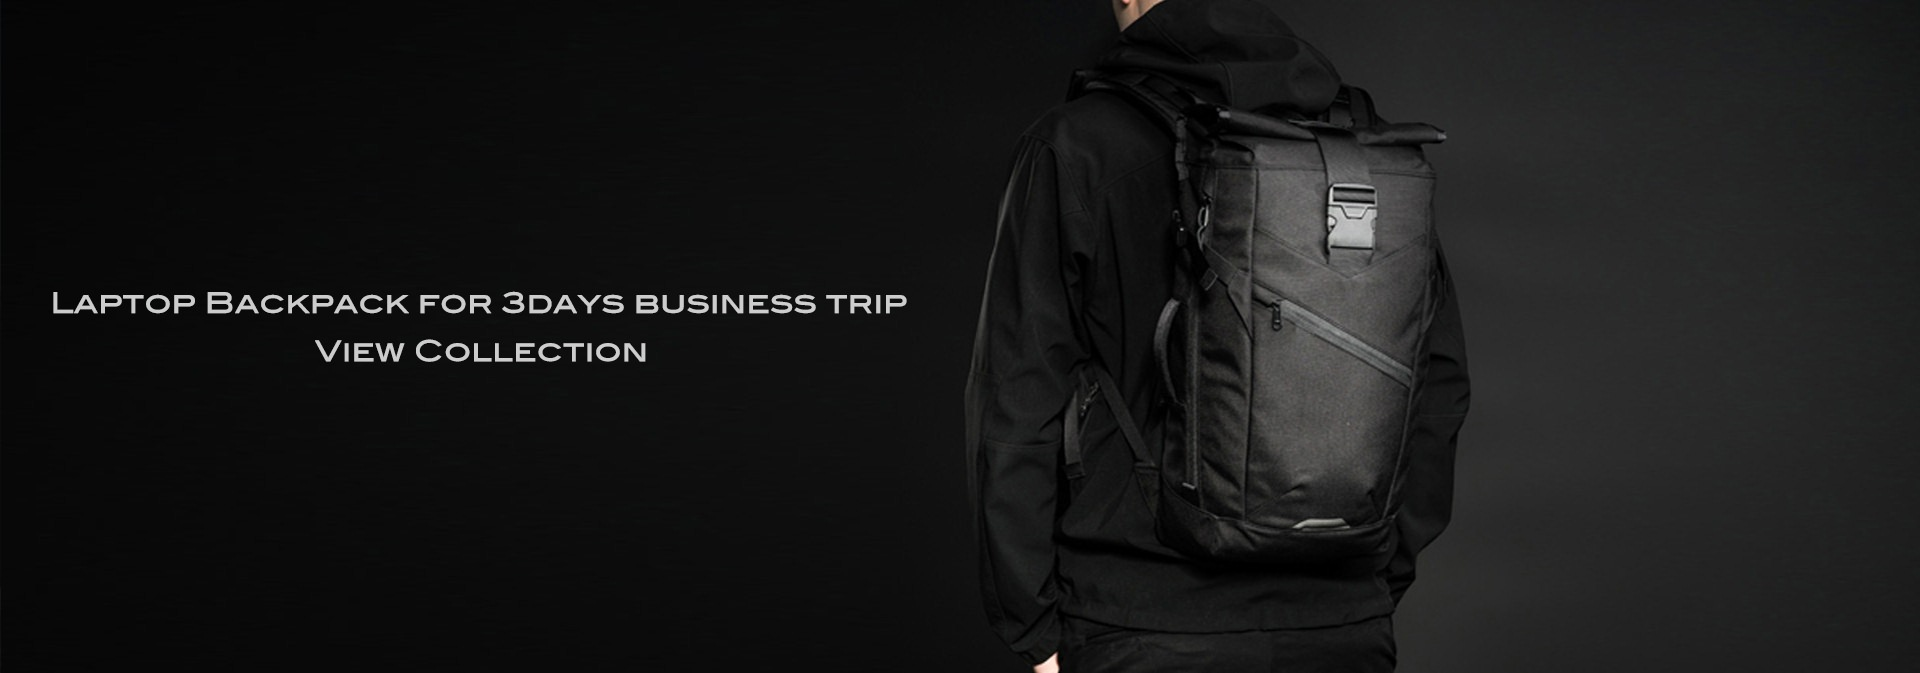 backpack supplier